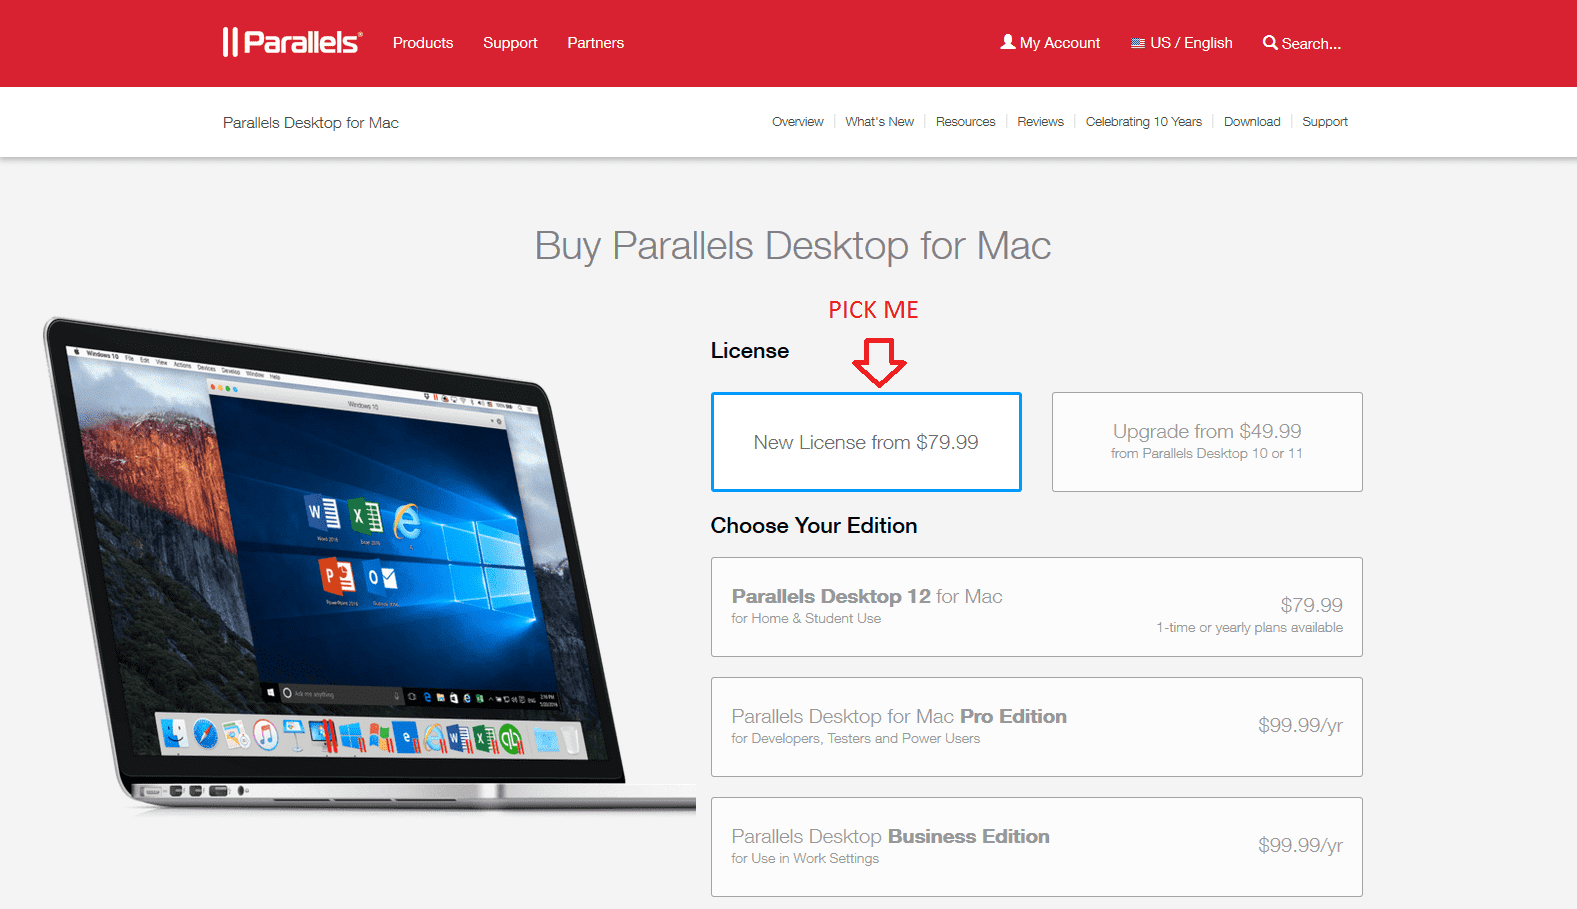 How to upgrade Parallels Desktop 9 to Parallels Desktop 12